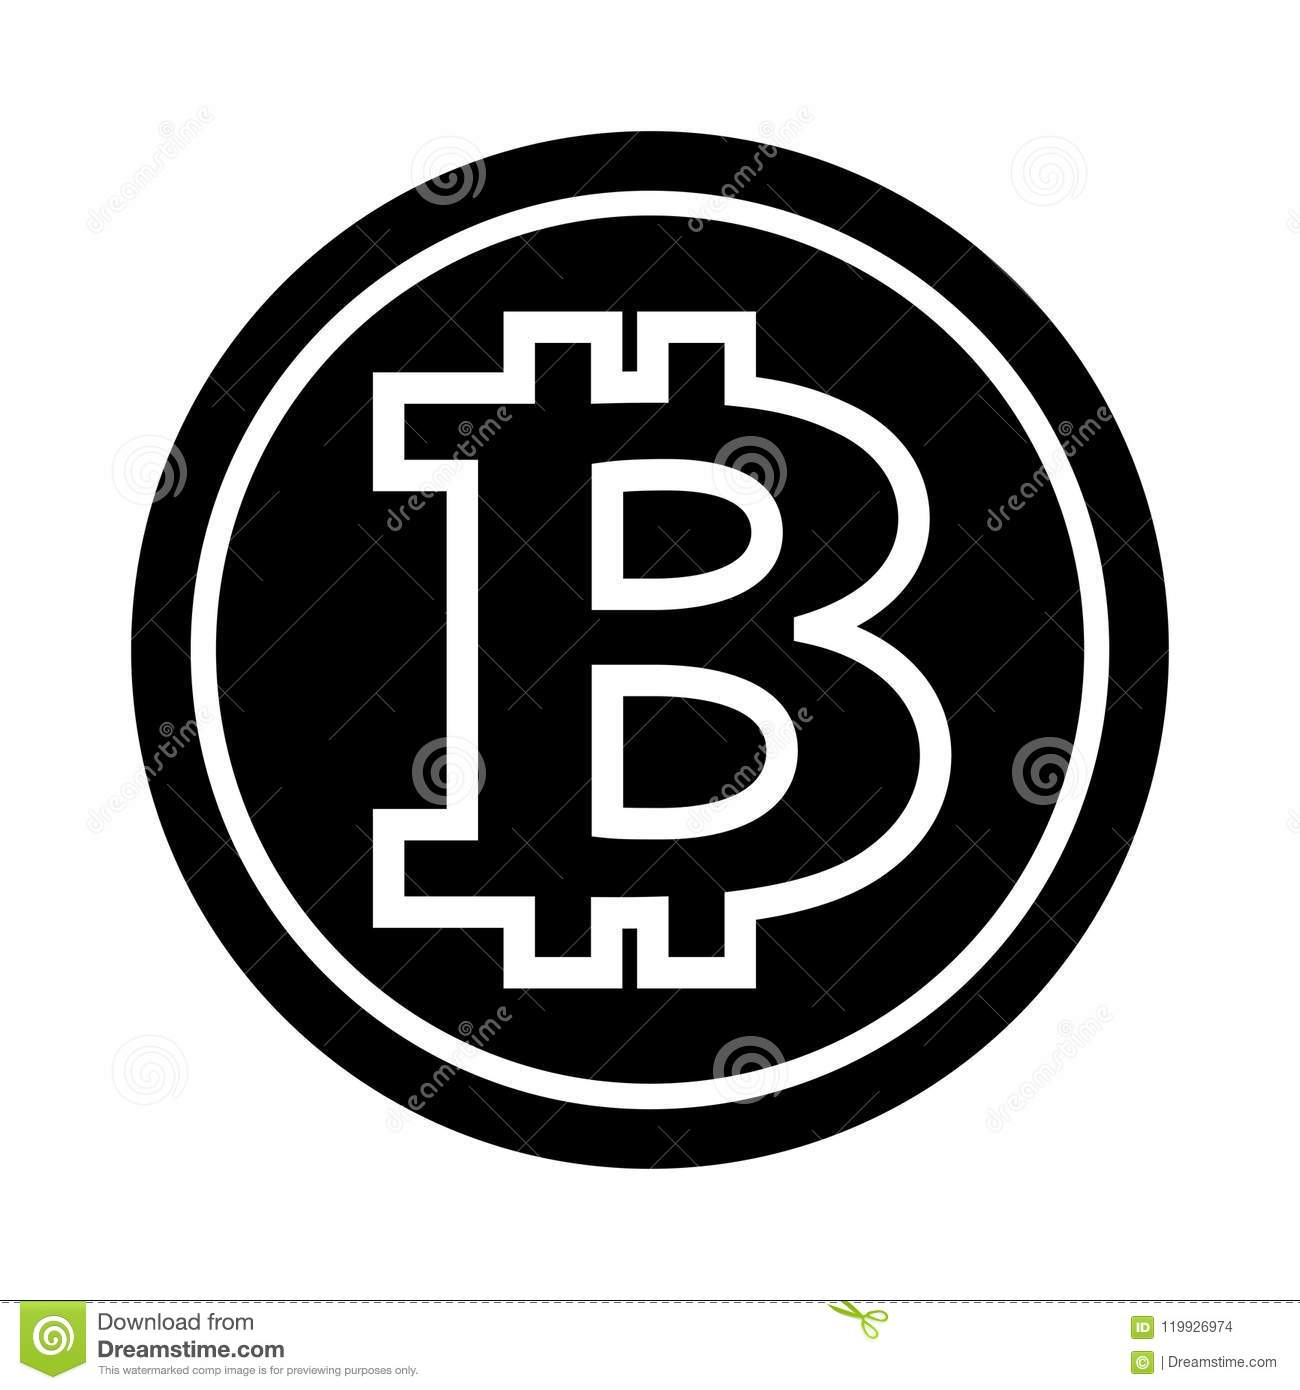 Bitcoin Silhouette Vector Illustration Isolated On White ...